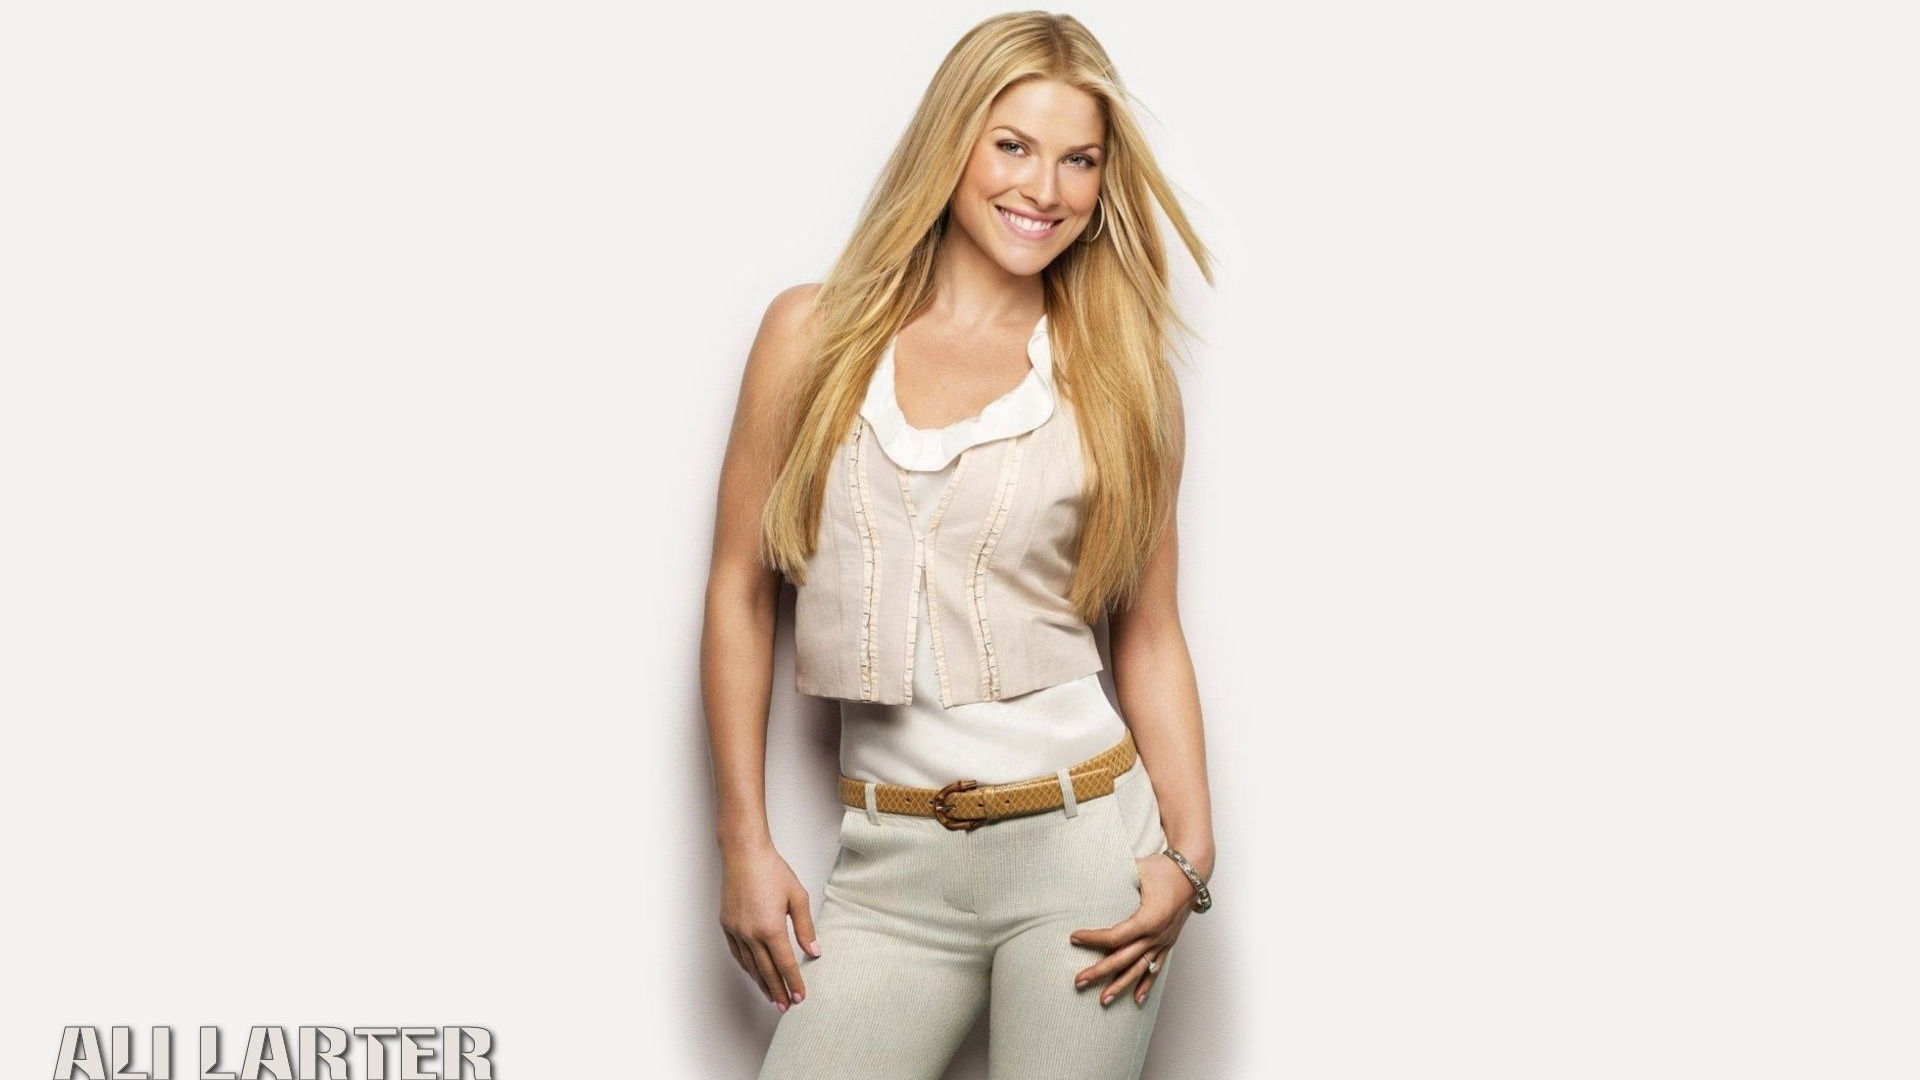 Ali Larter #004 - 1920x1080 Wallpapers Pictures Photos Images